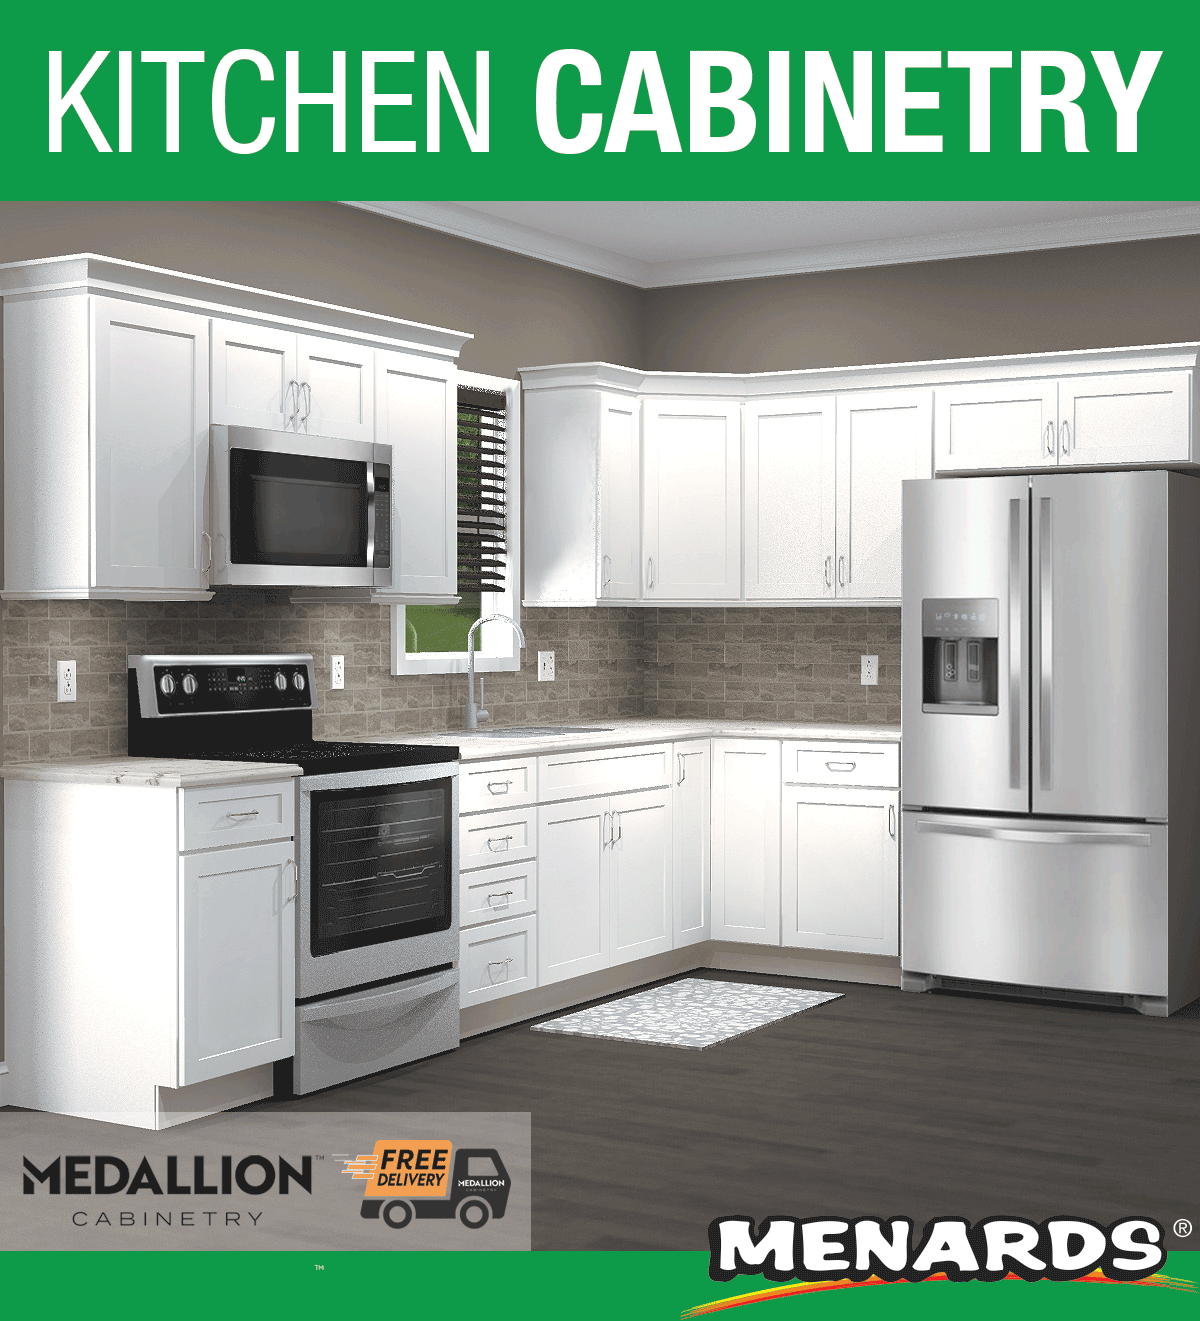 Medallion Cabinetry Hawthorne Sea Salt Kitchen Cabinets In 2020 Cabinet Garage Cabinets Medallion Cabinets